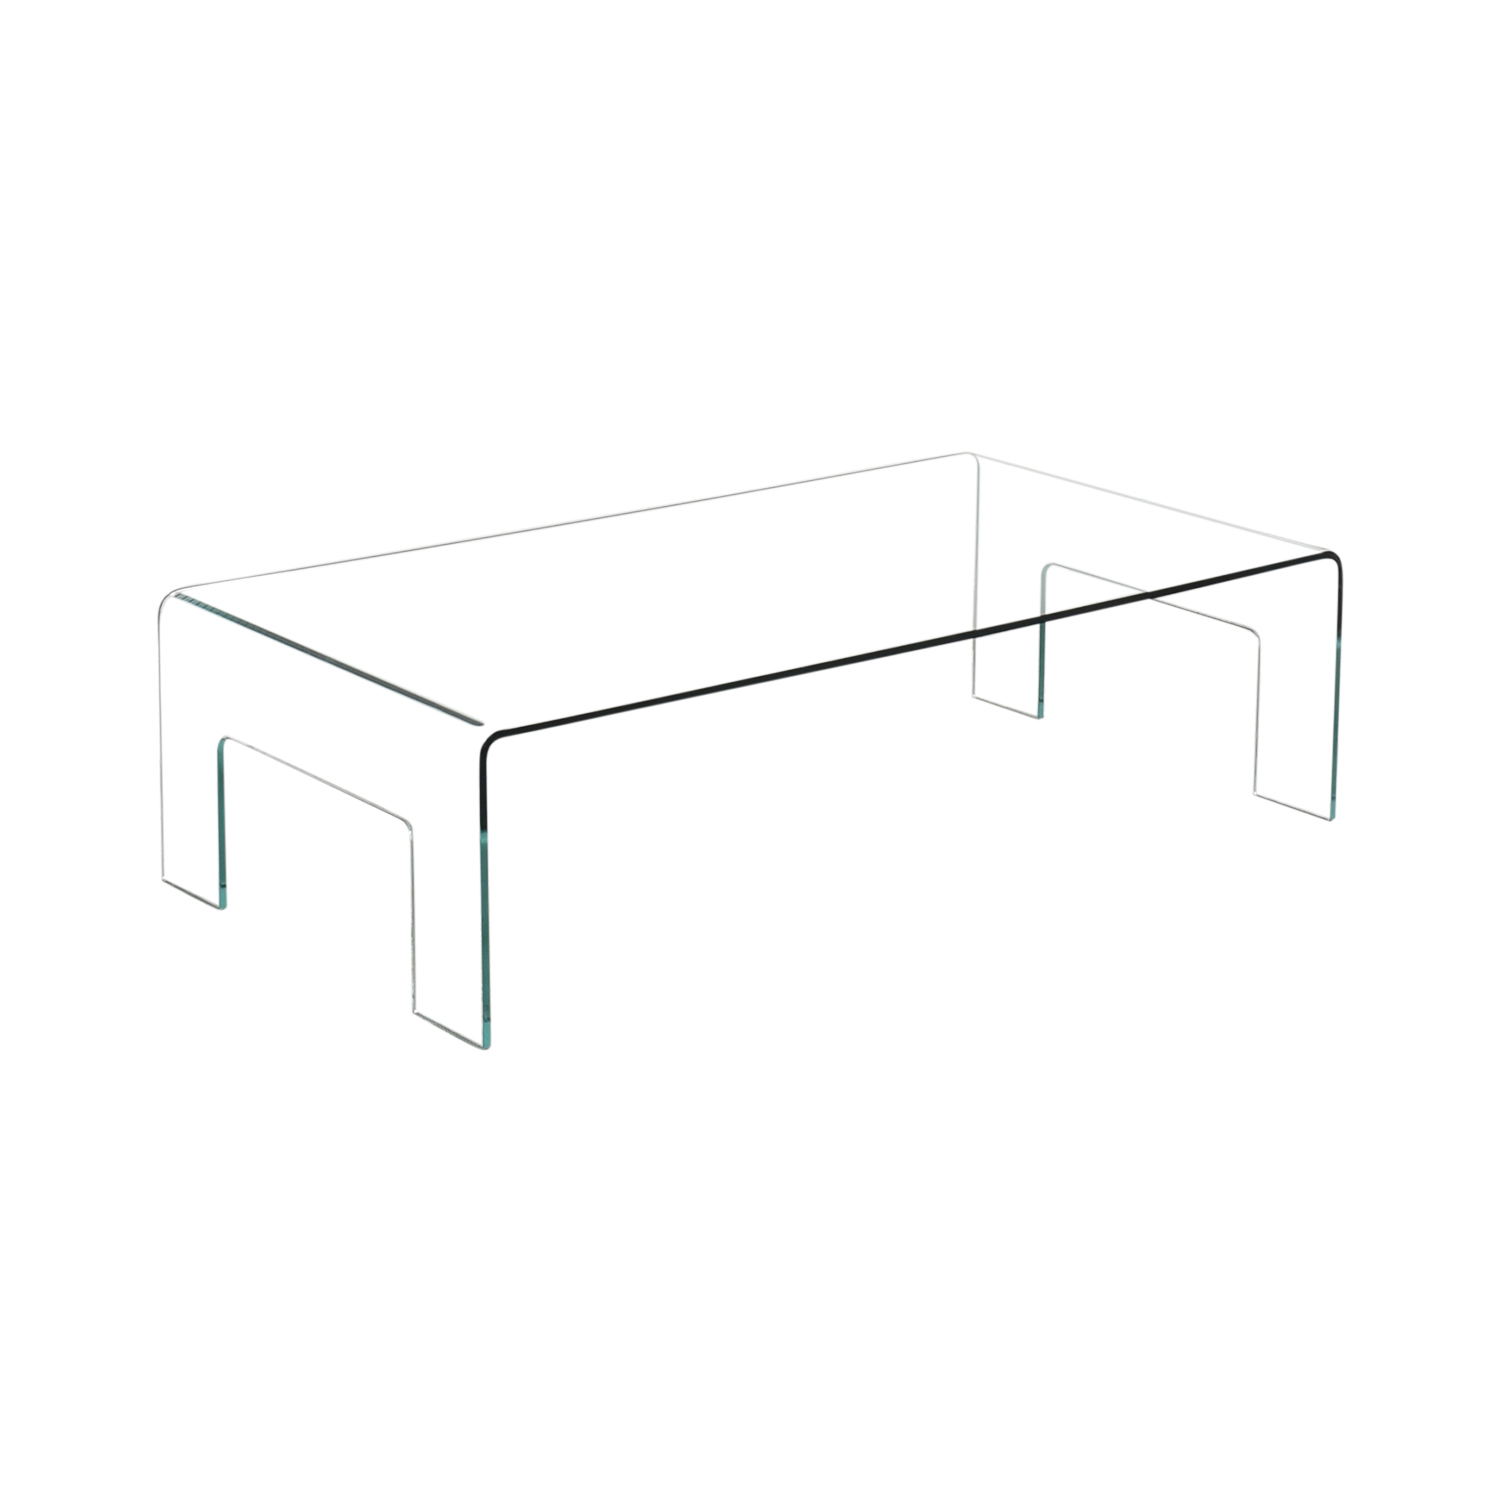 Calligaris Calligaris Connubia Real Coffee Table clear